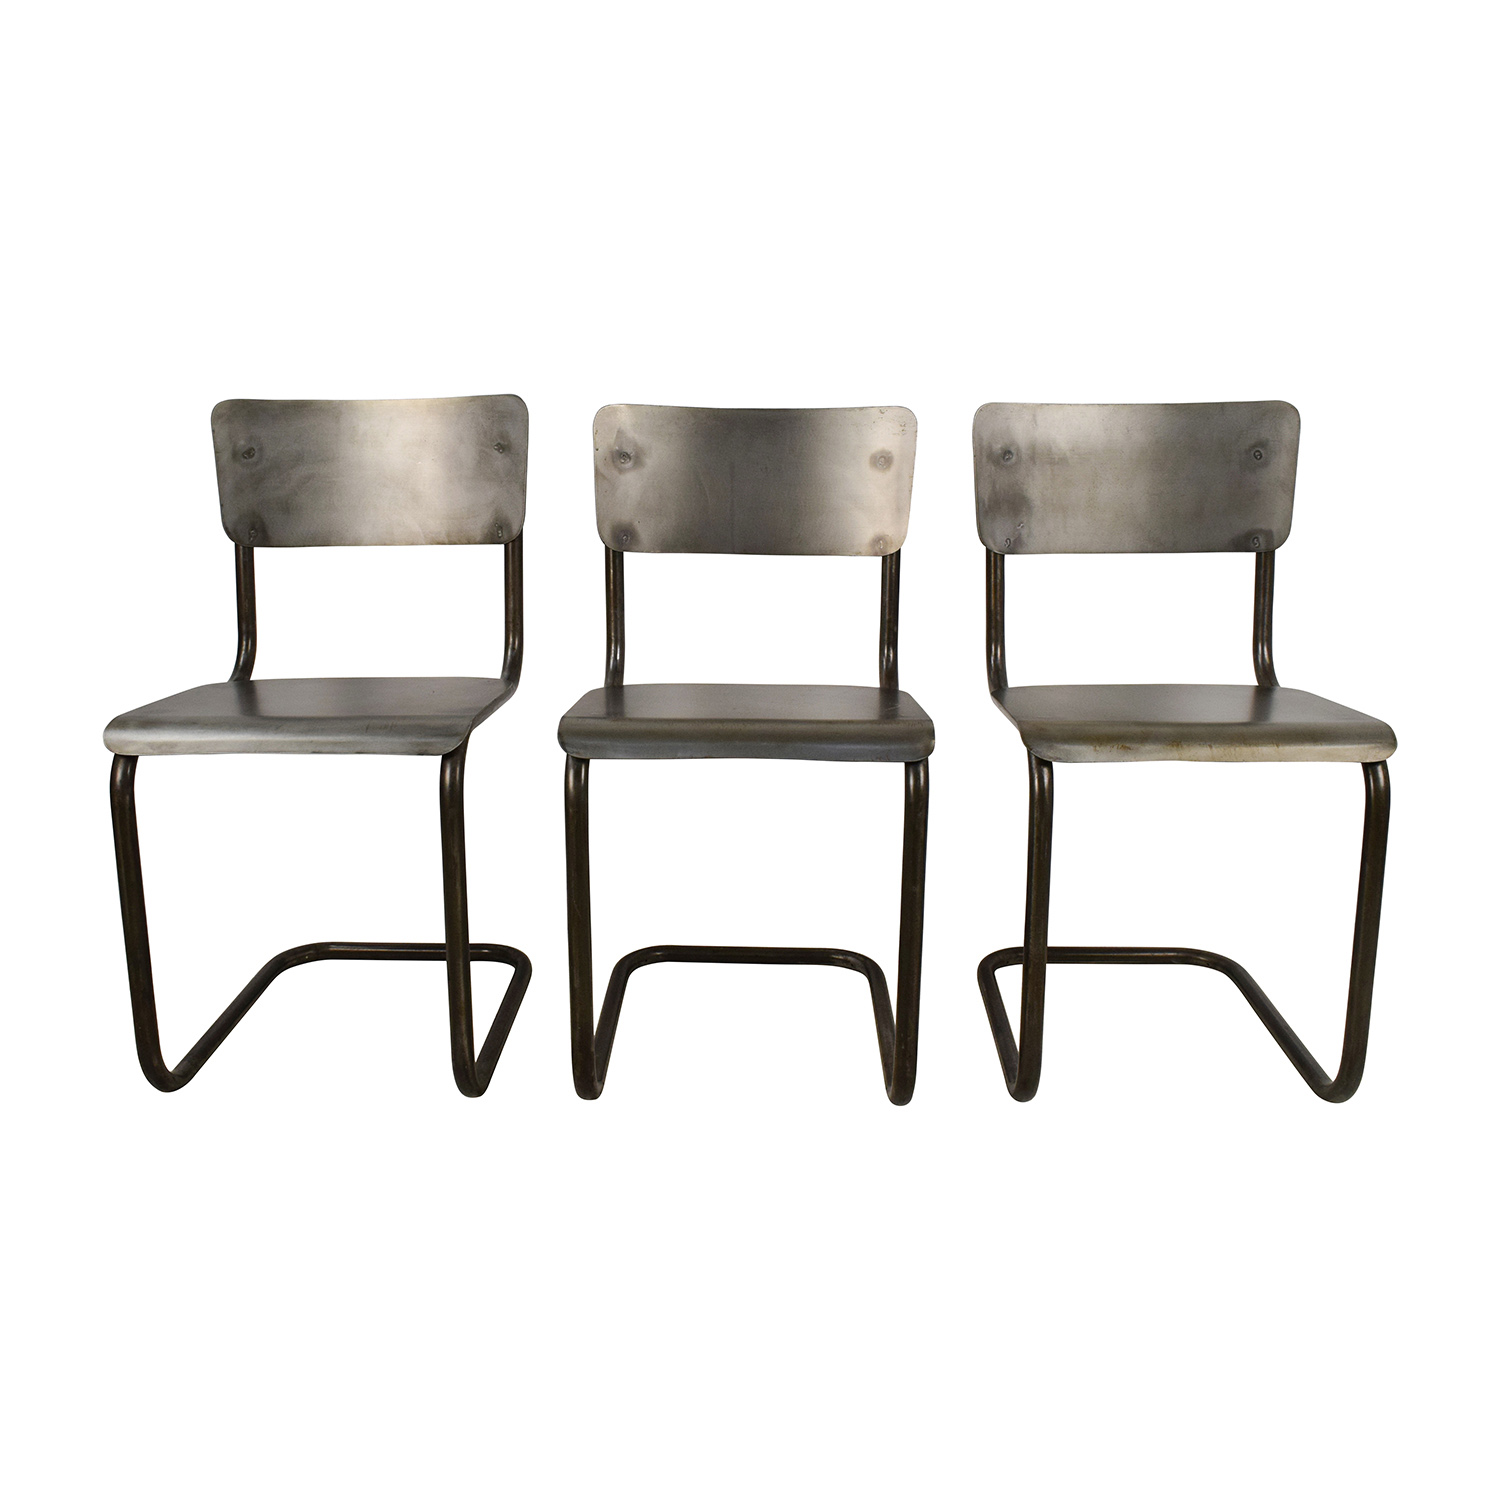 shop Industrial Style Metal Chair Set online